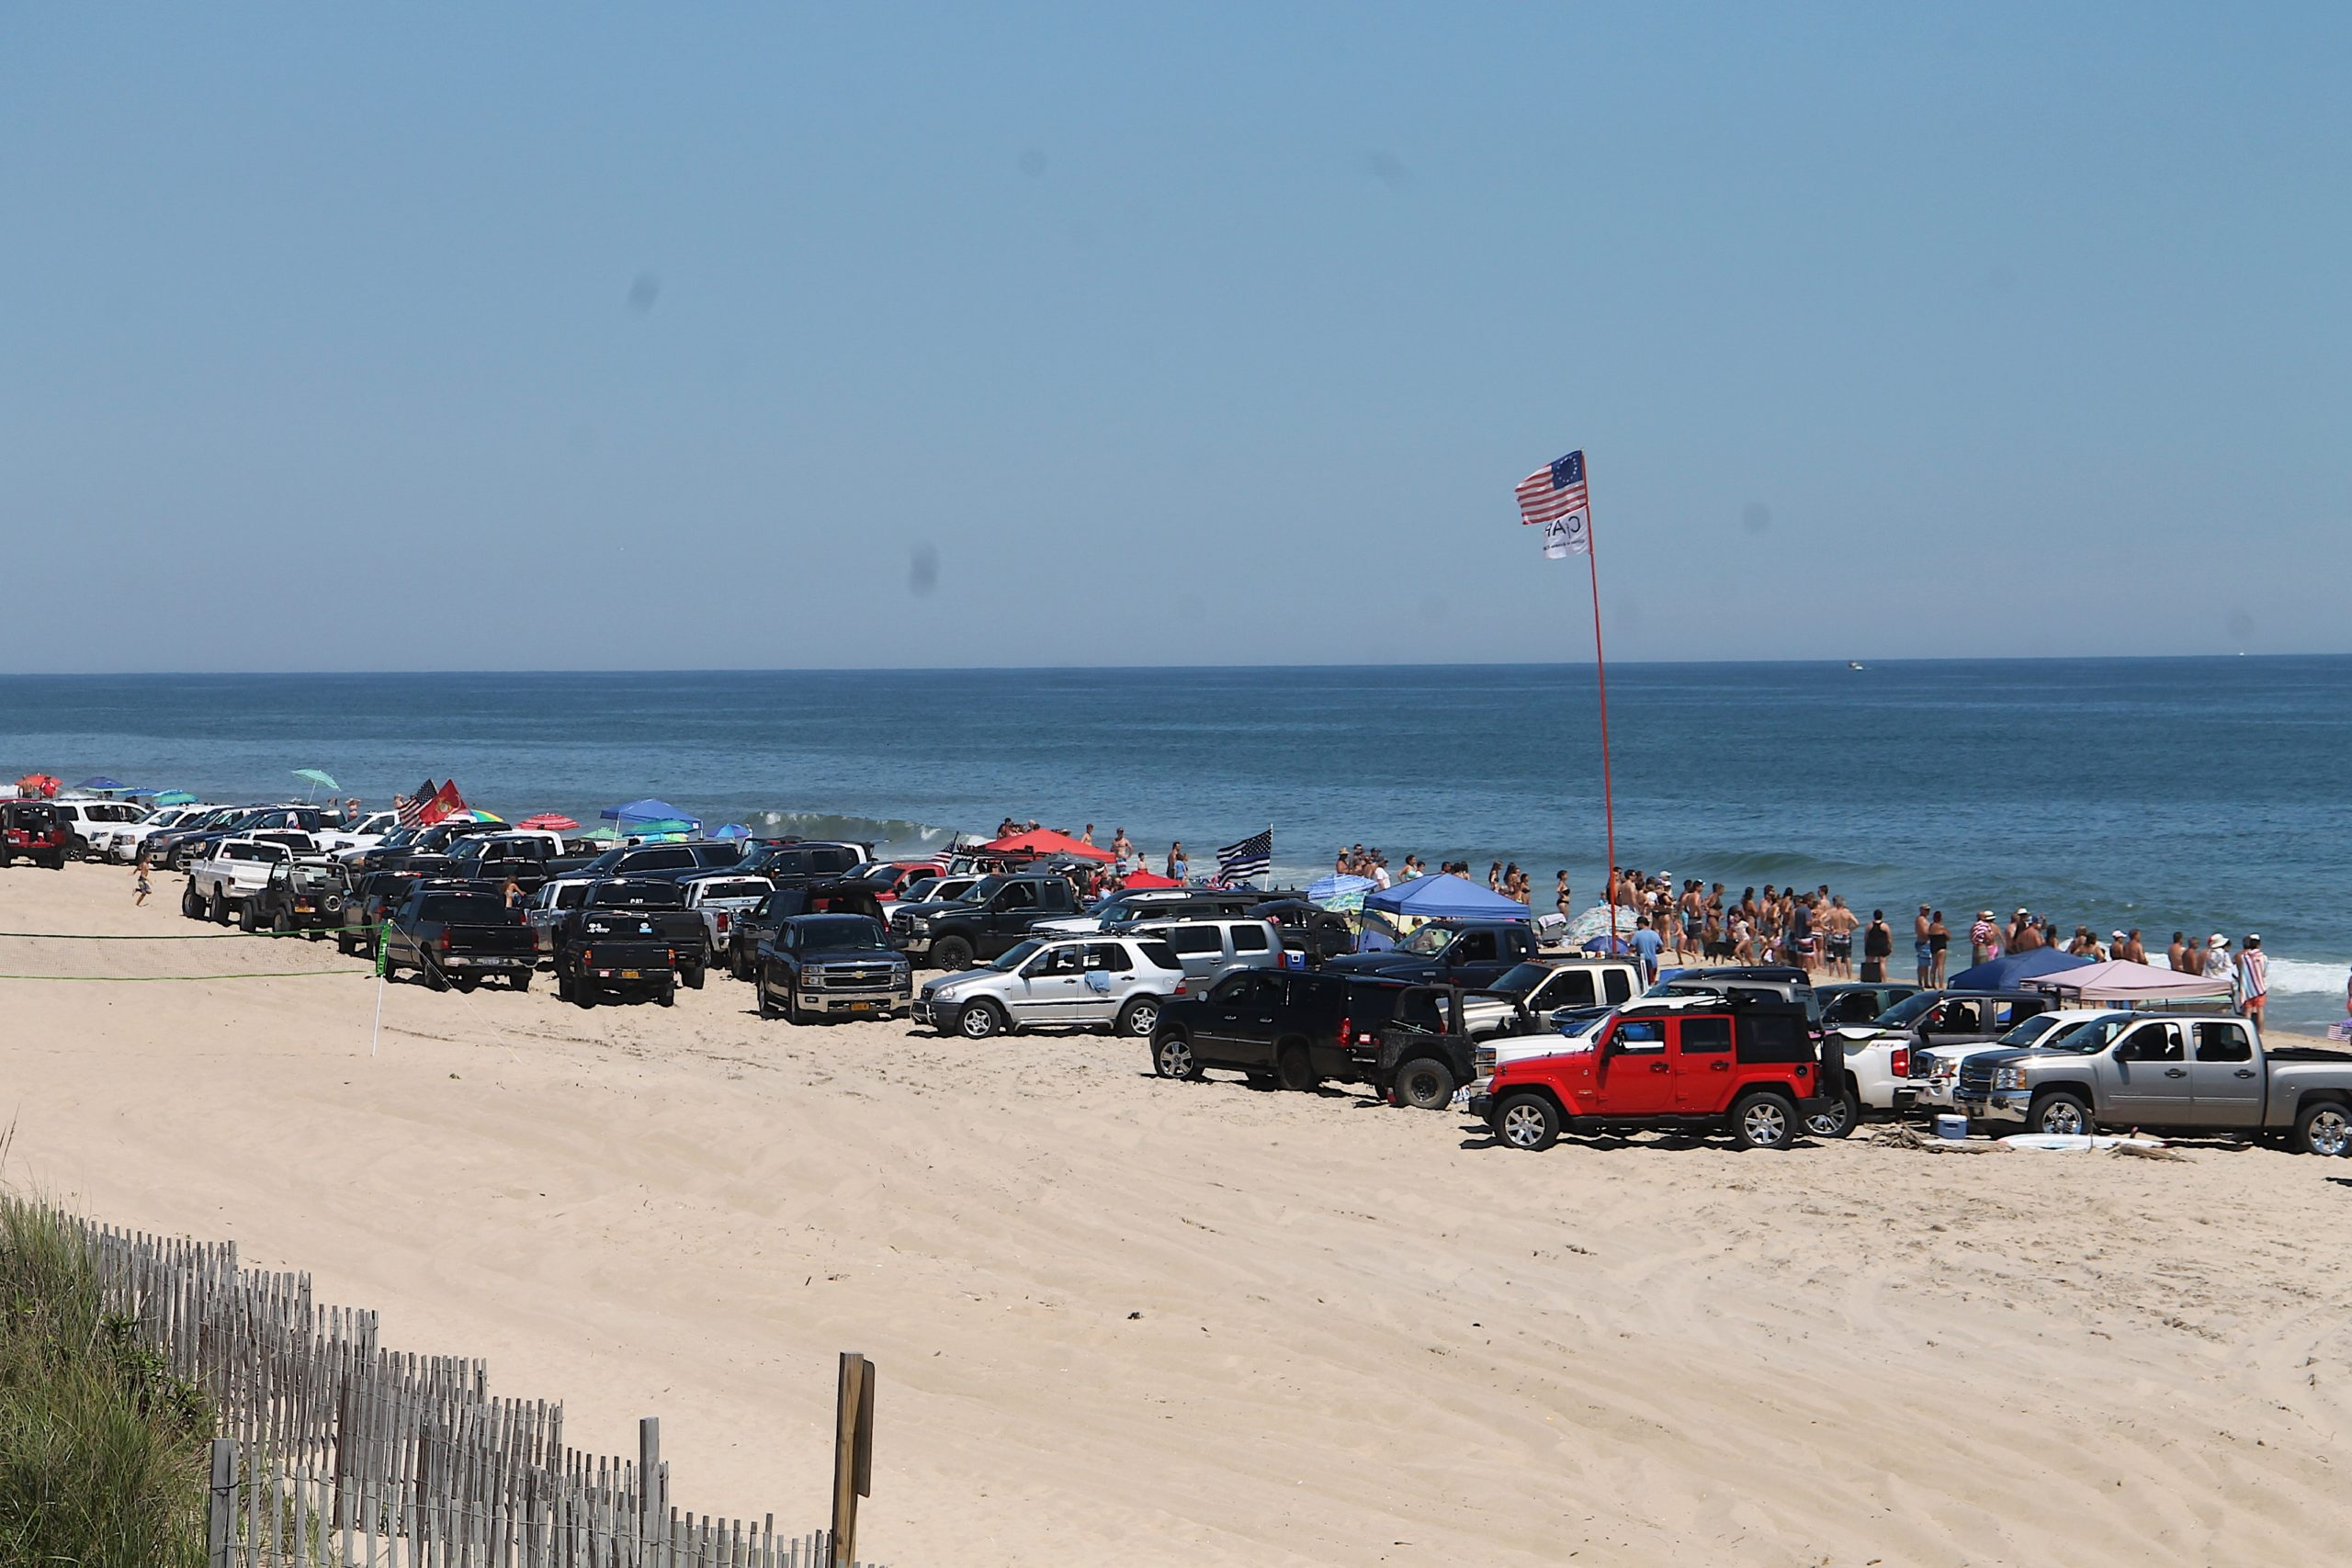 The beach in Amagansett long known as Truck Beach will be private for the foreseeable future after a court ruling ended the town's appeals this week.